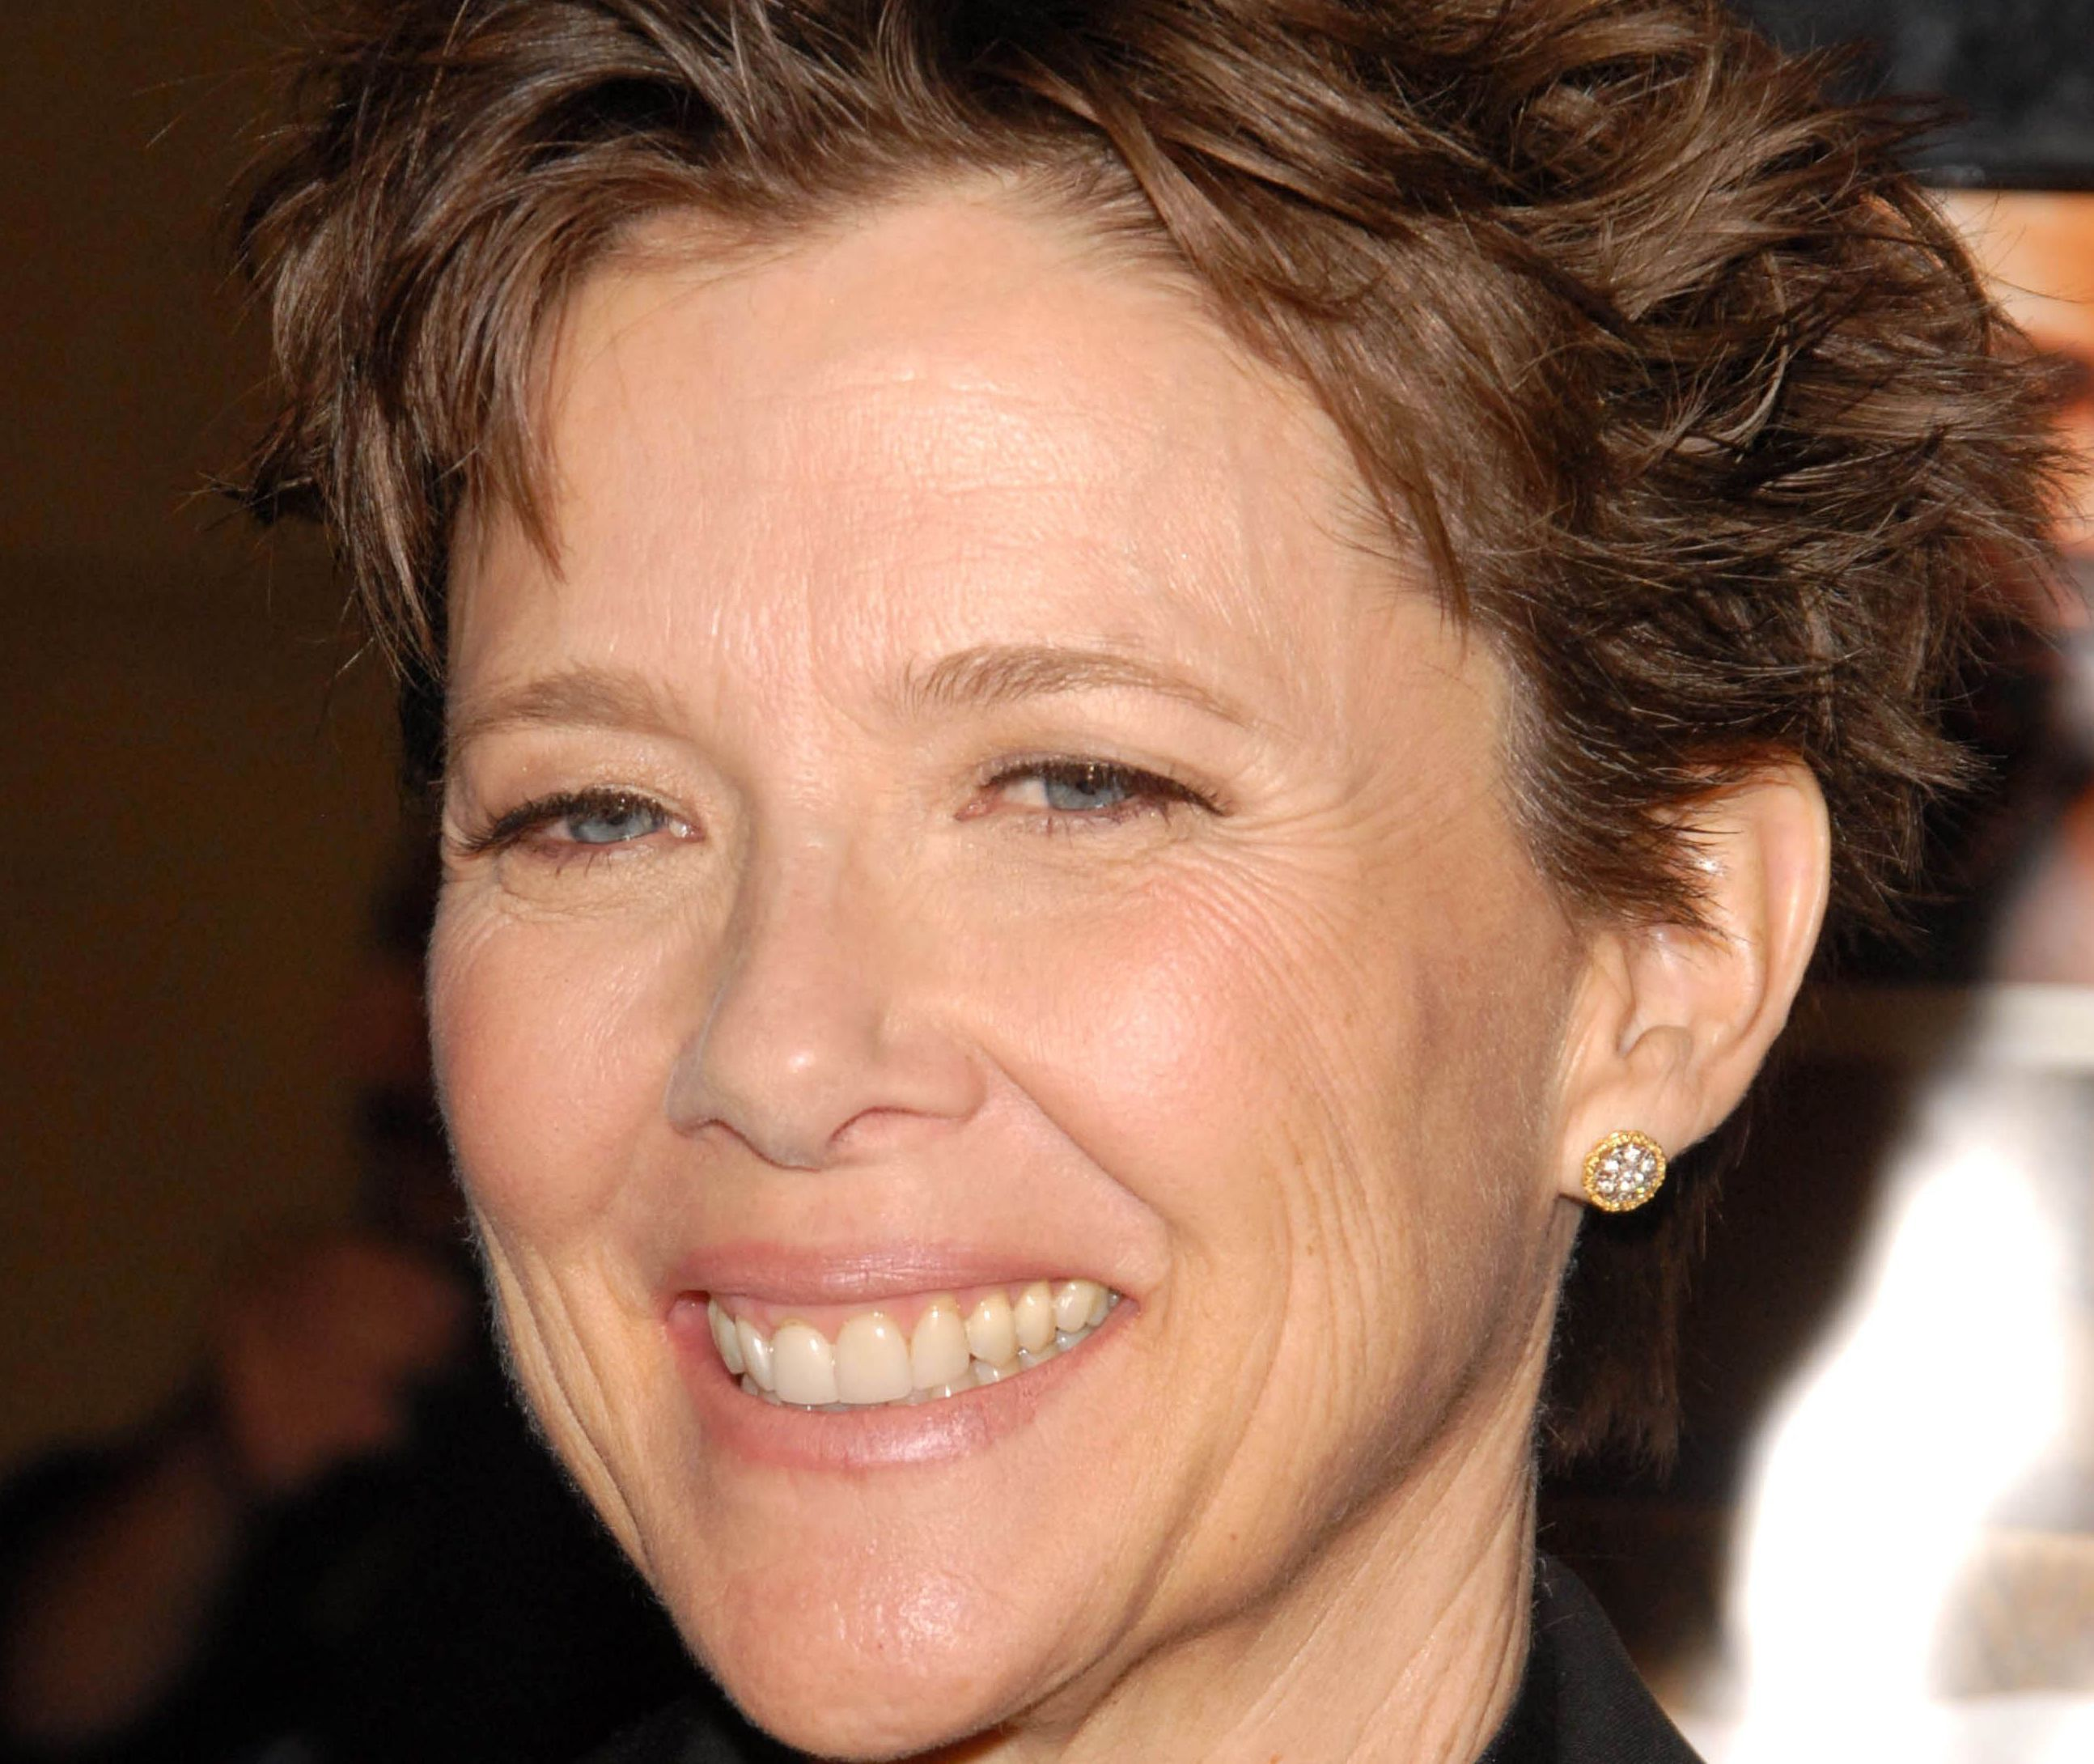 annette bening wallpaper - photo #13